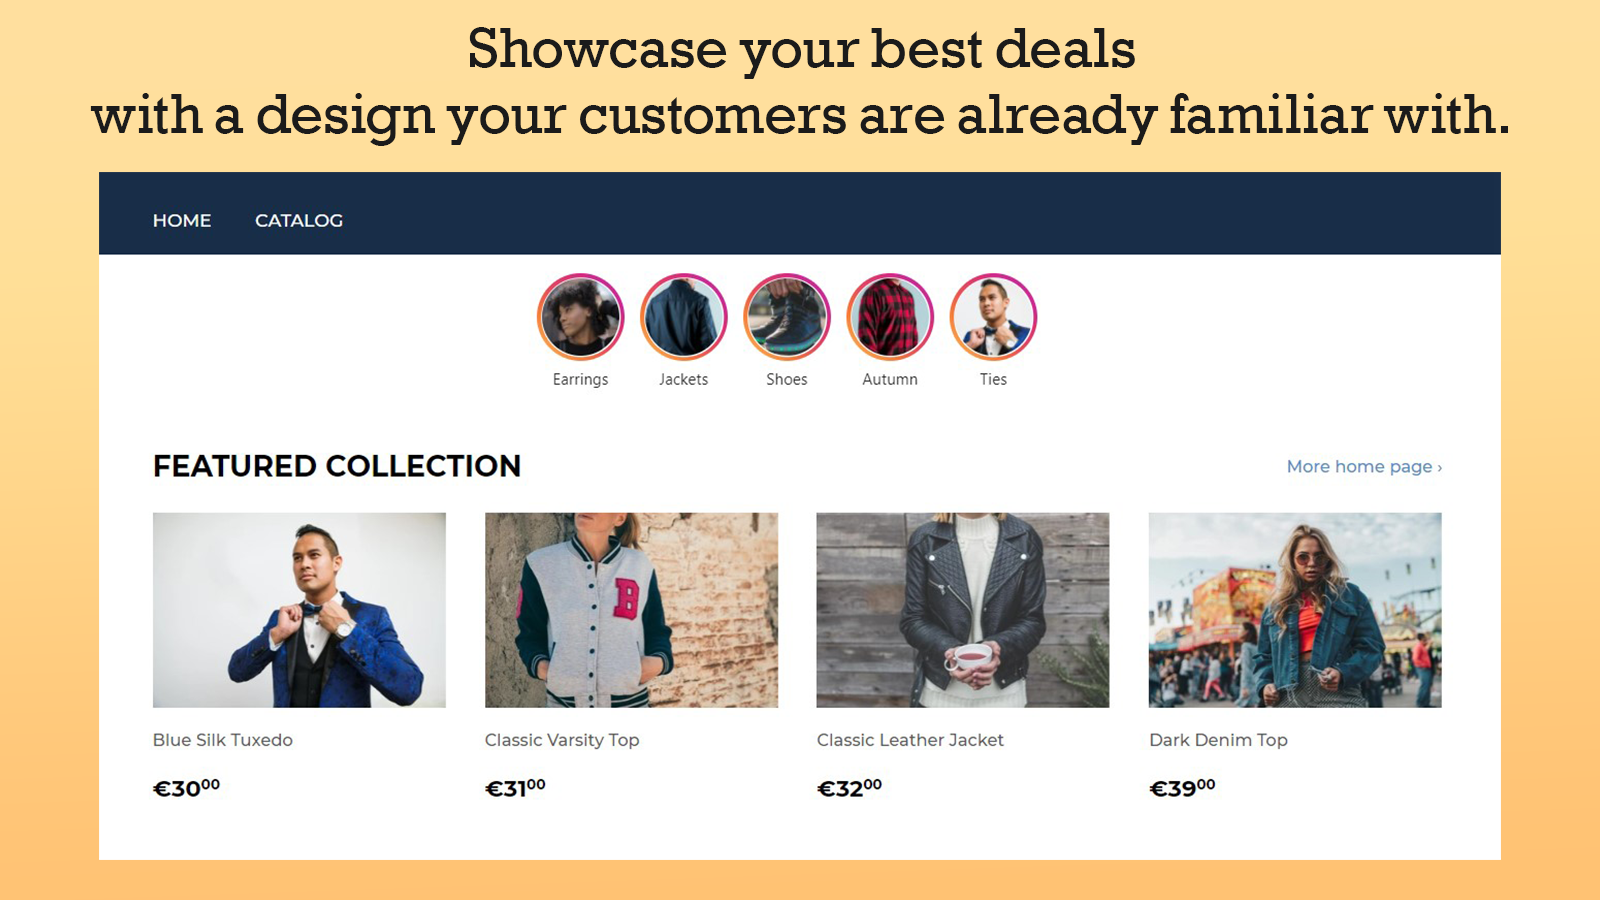 Show your best deals with a design your customers are familiar.